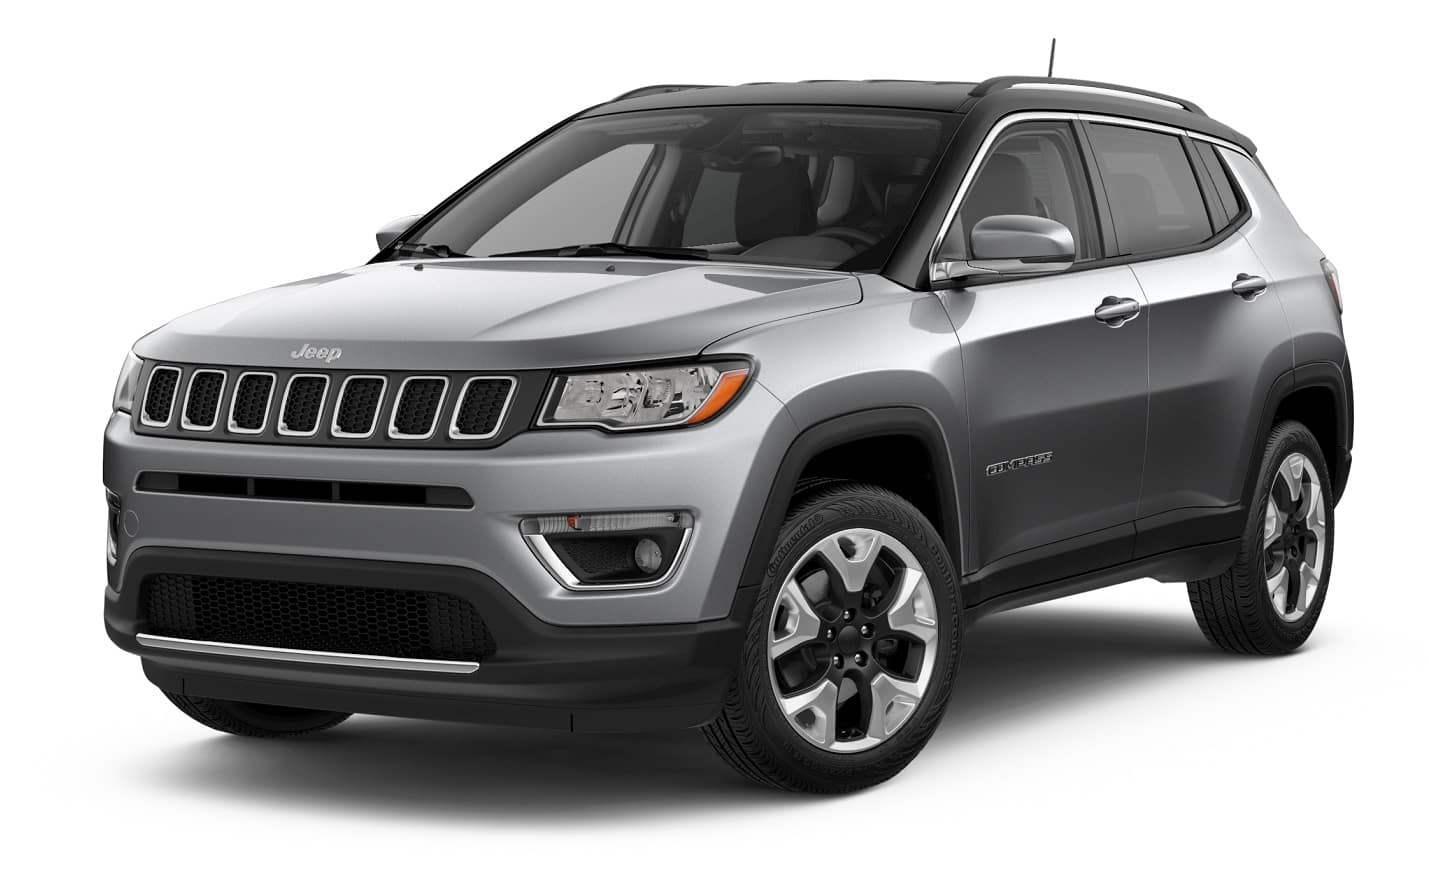 2019 Jeep Compass Limted Billet Silver Metallic Clear Coat